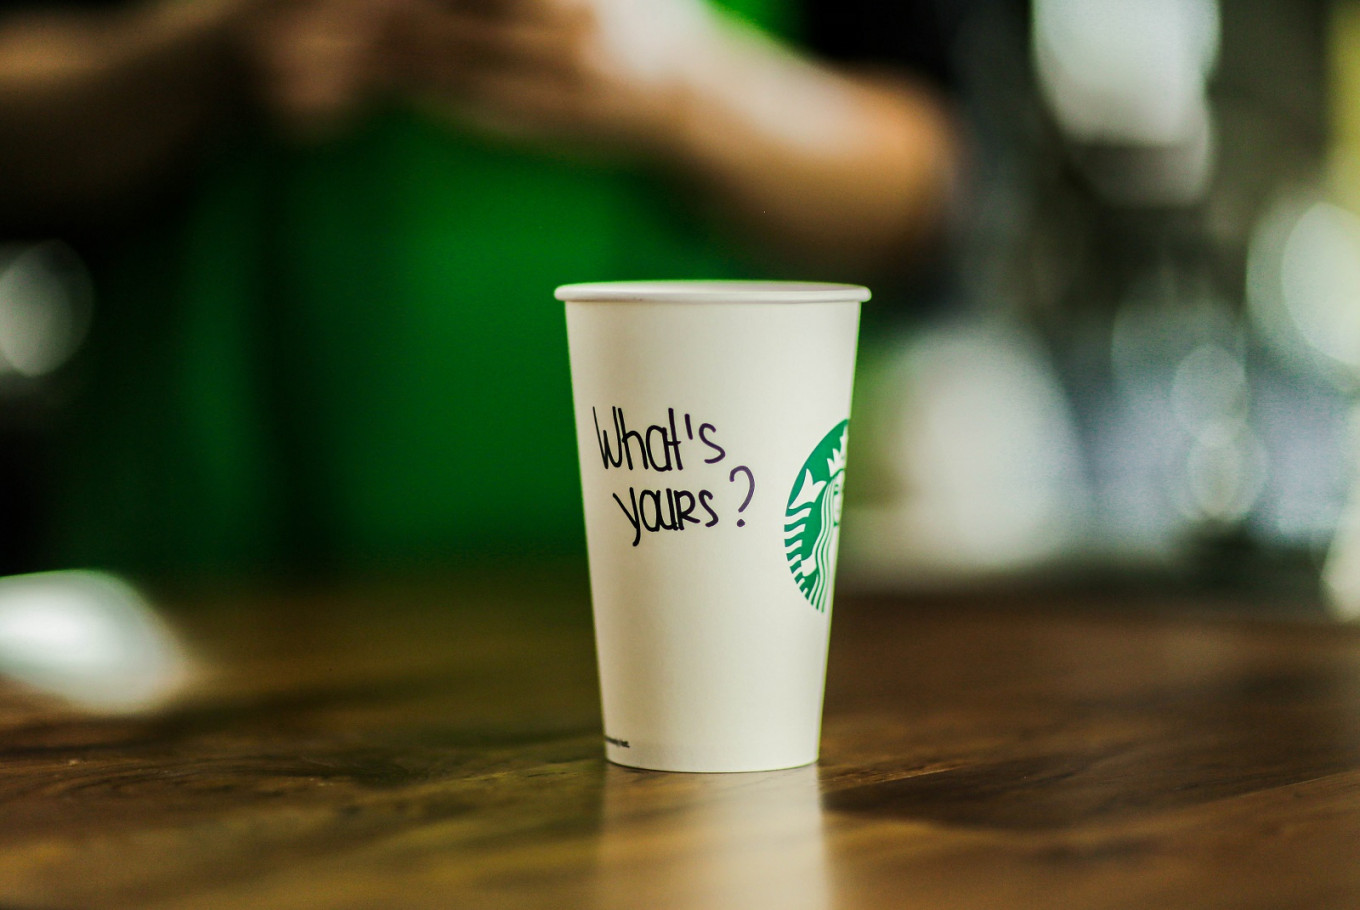 Stories are brewing: Starbucks Indonesia launches